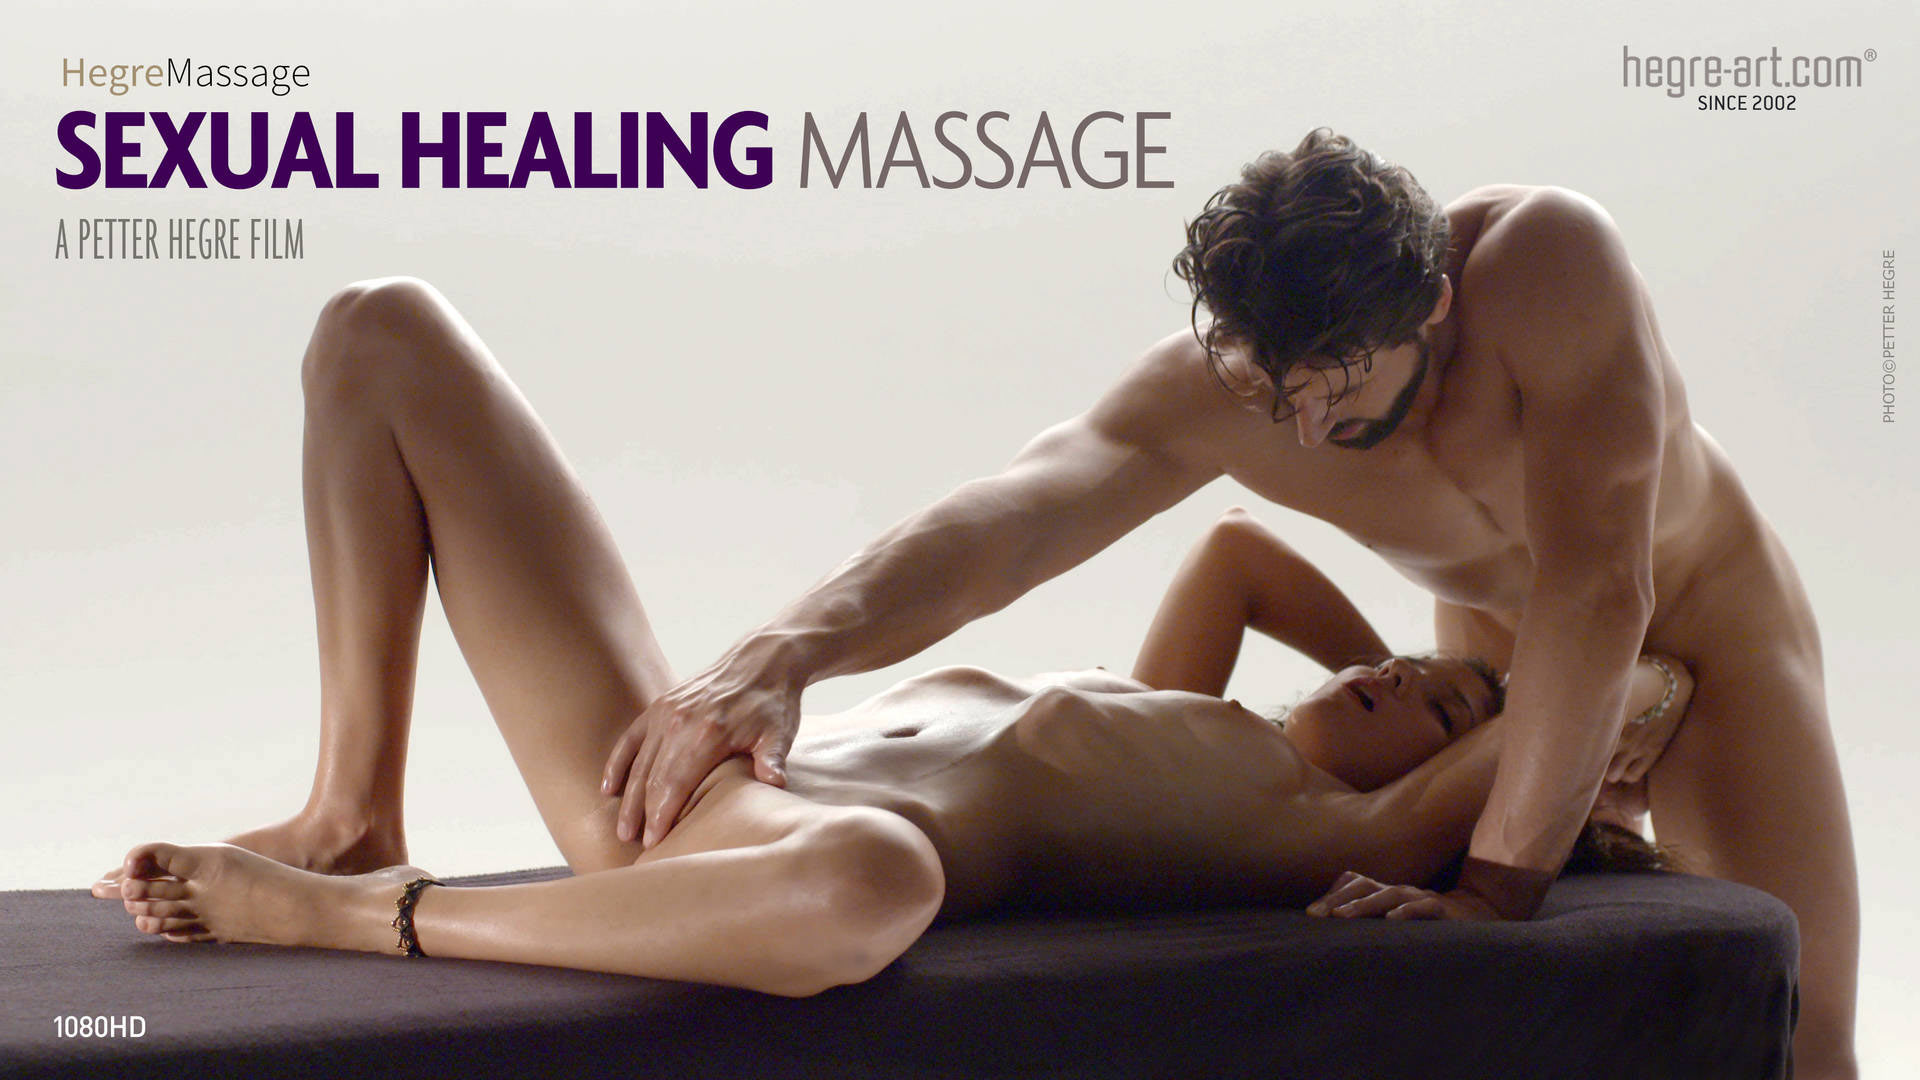 Massage Films  Hegre Art-2080